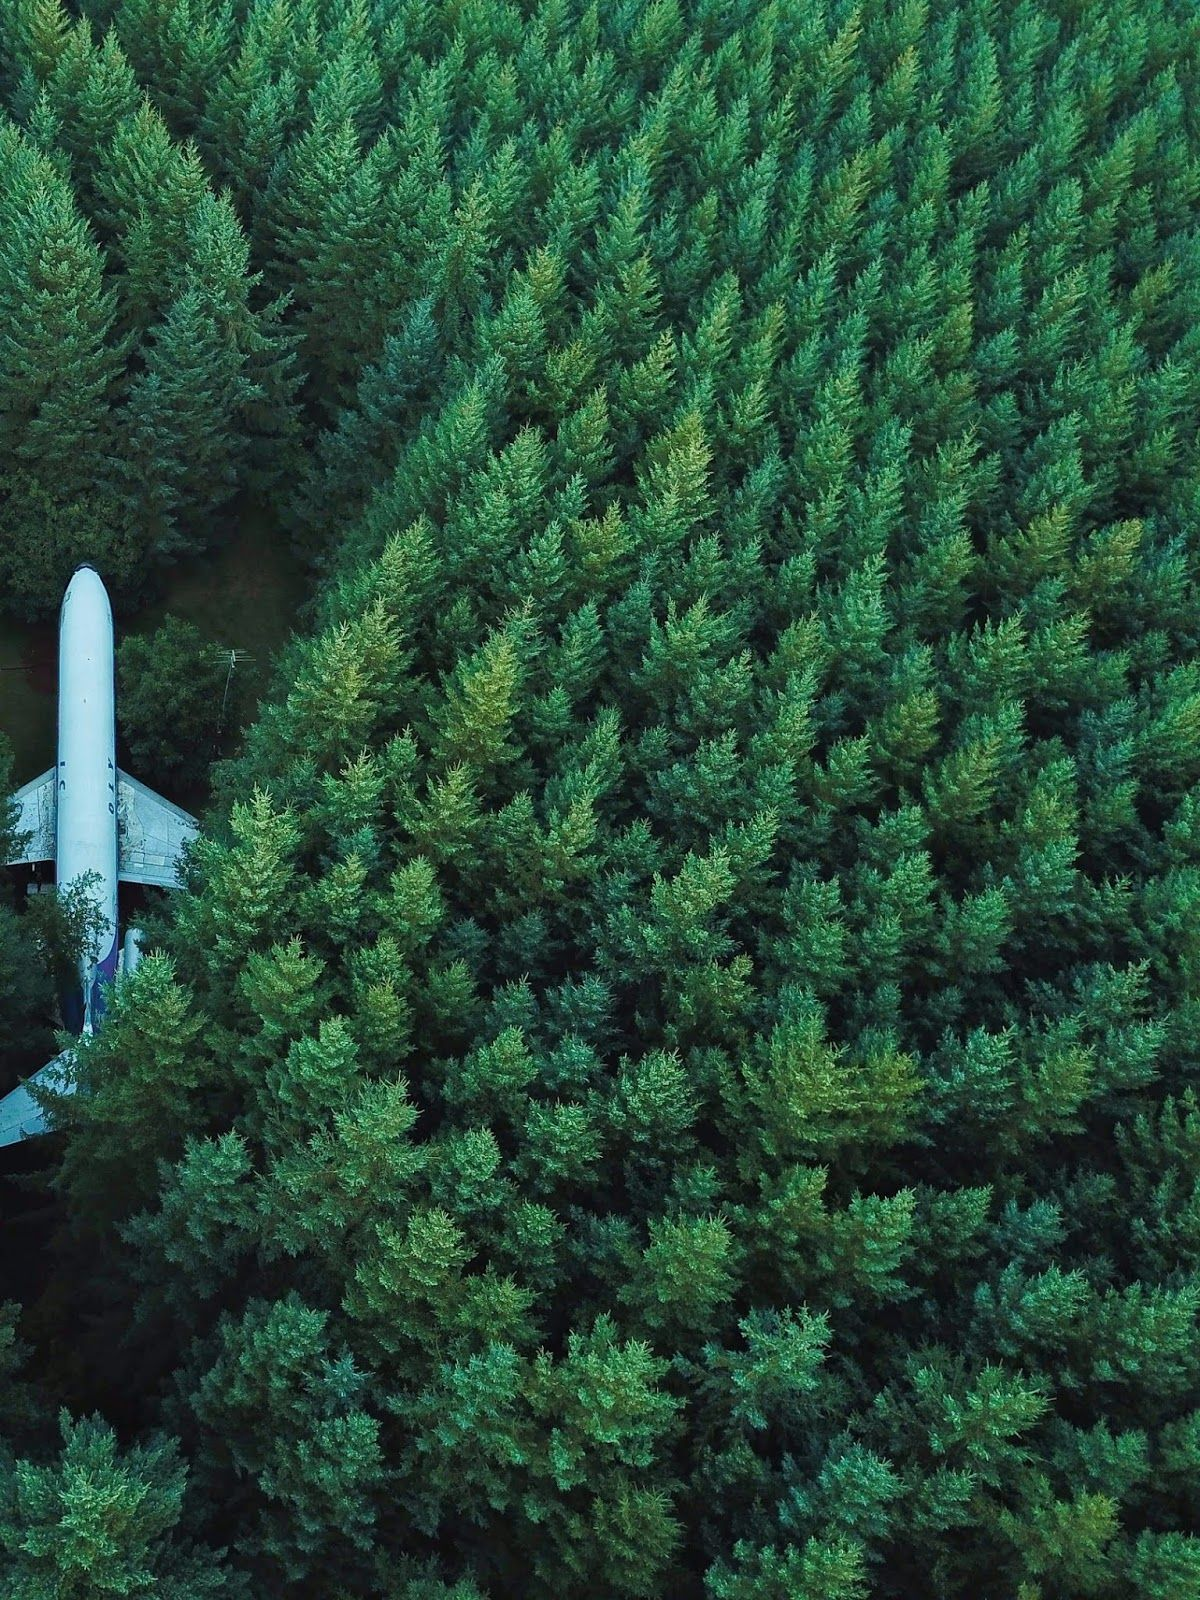 plane, forest, tree, lost, nature 4k background